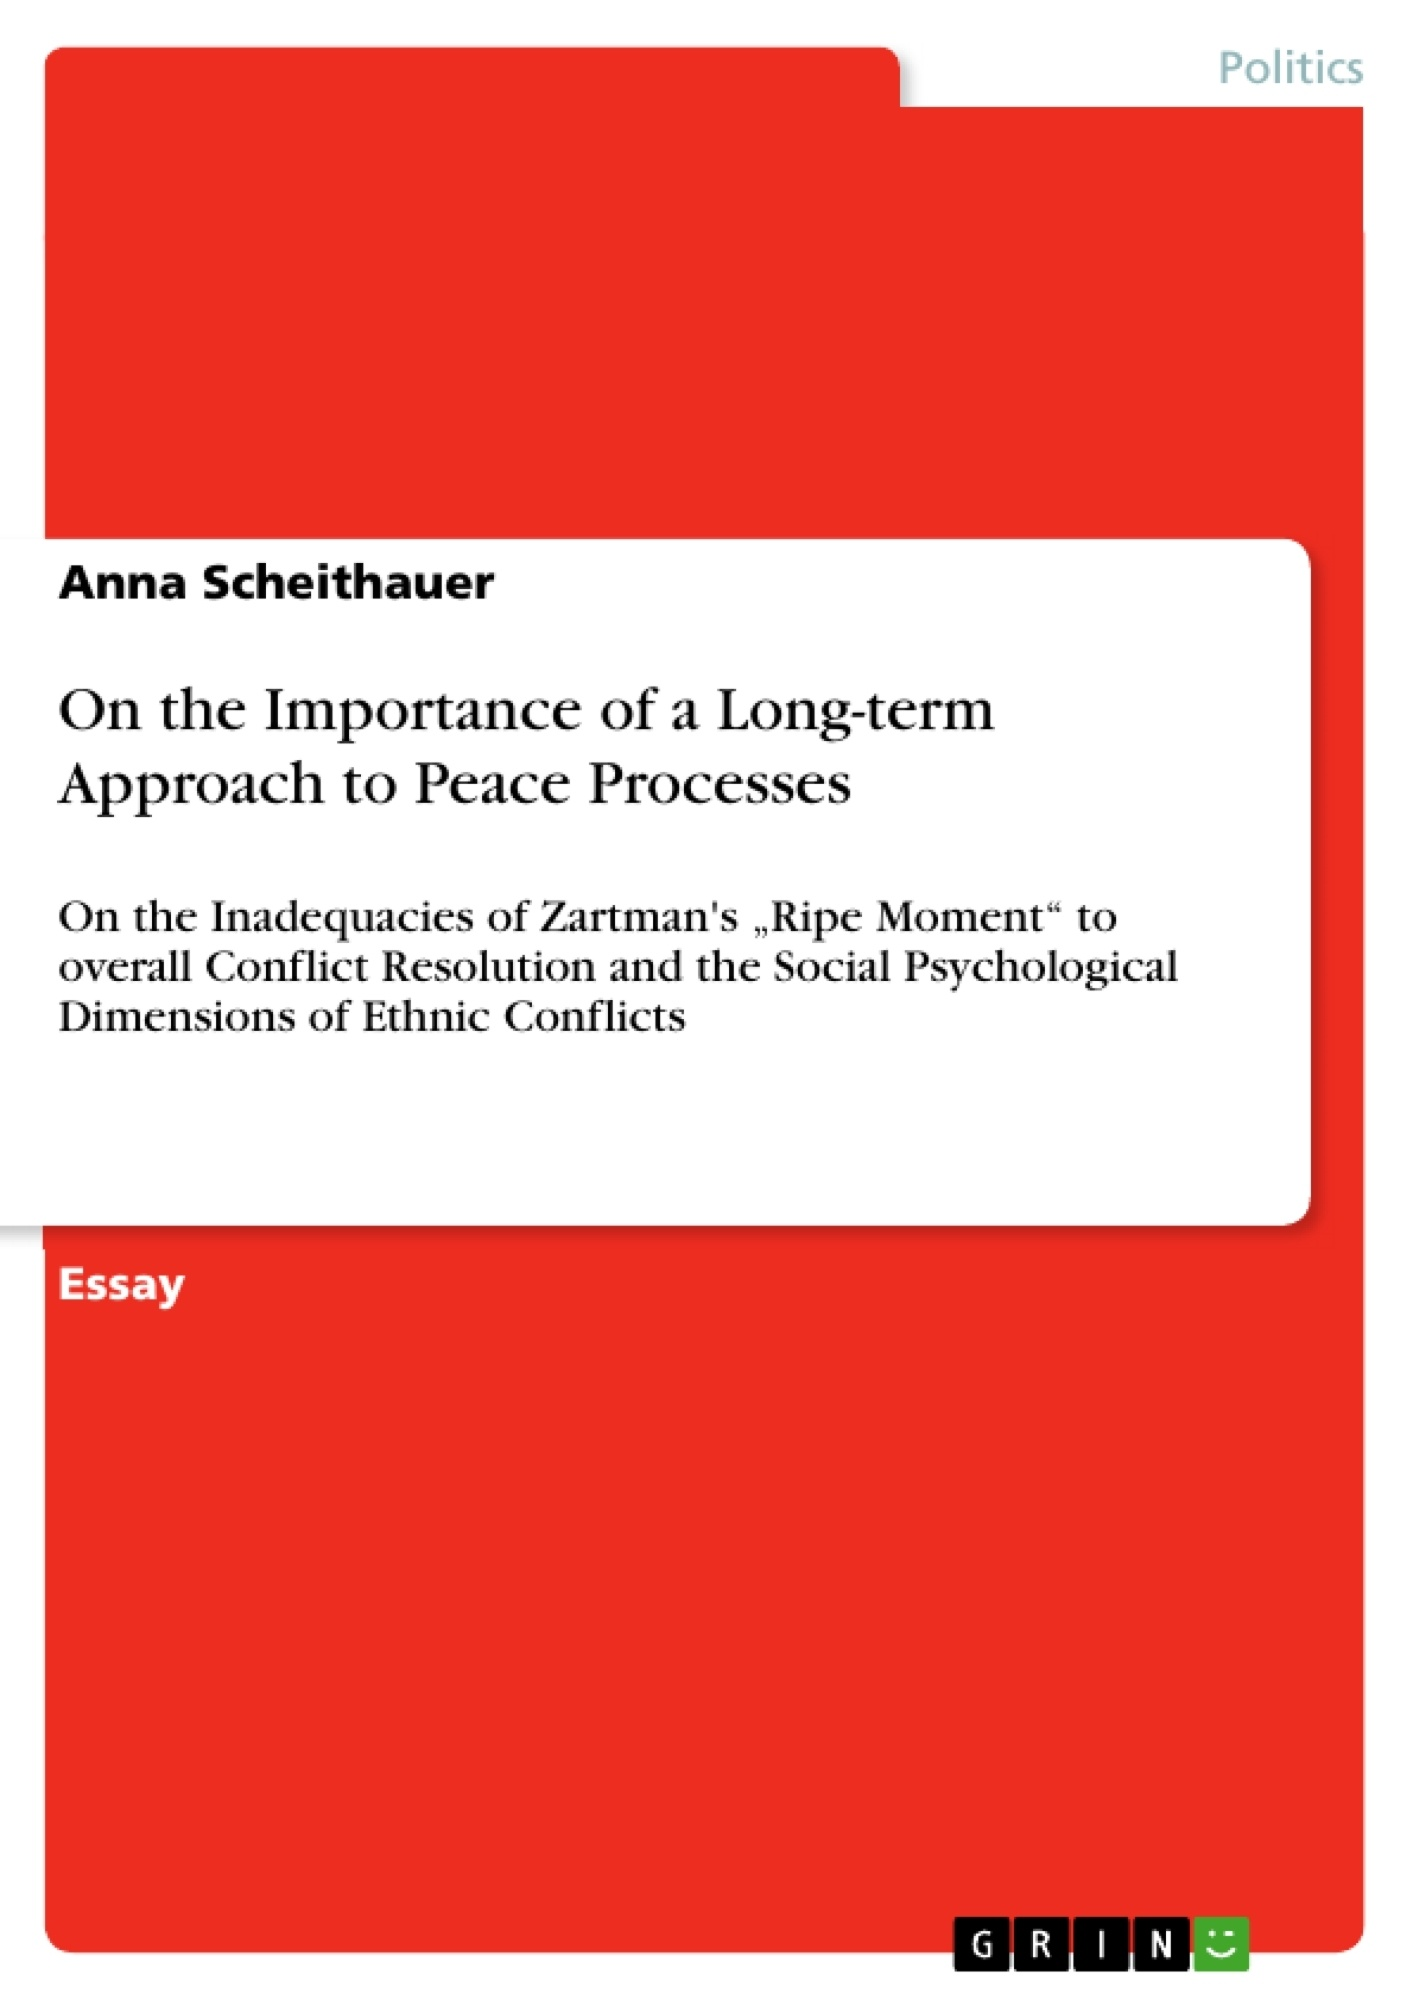 Title: On the Importance of a Long-term Approach to Peace Processes